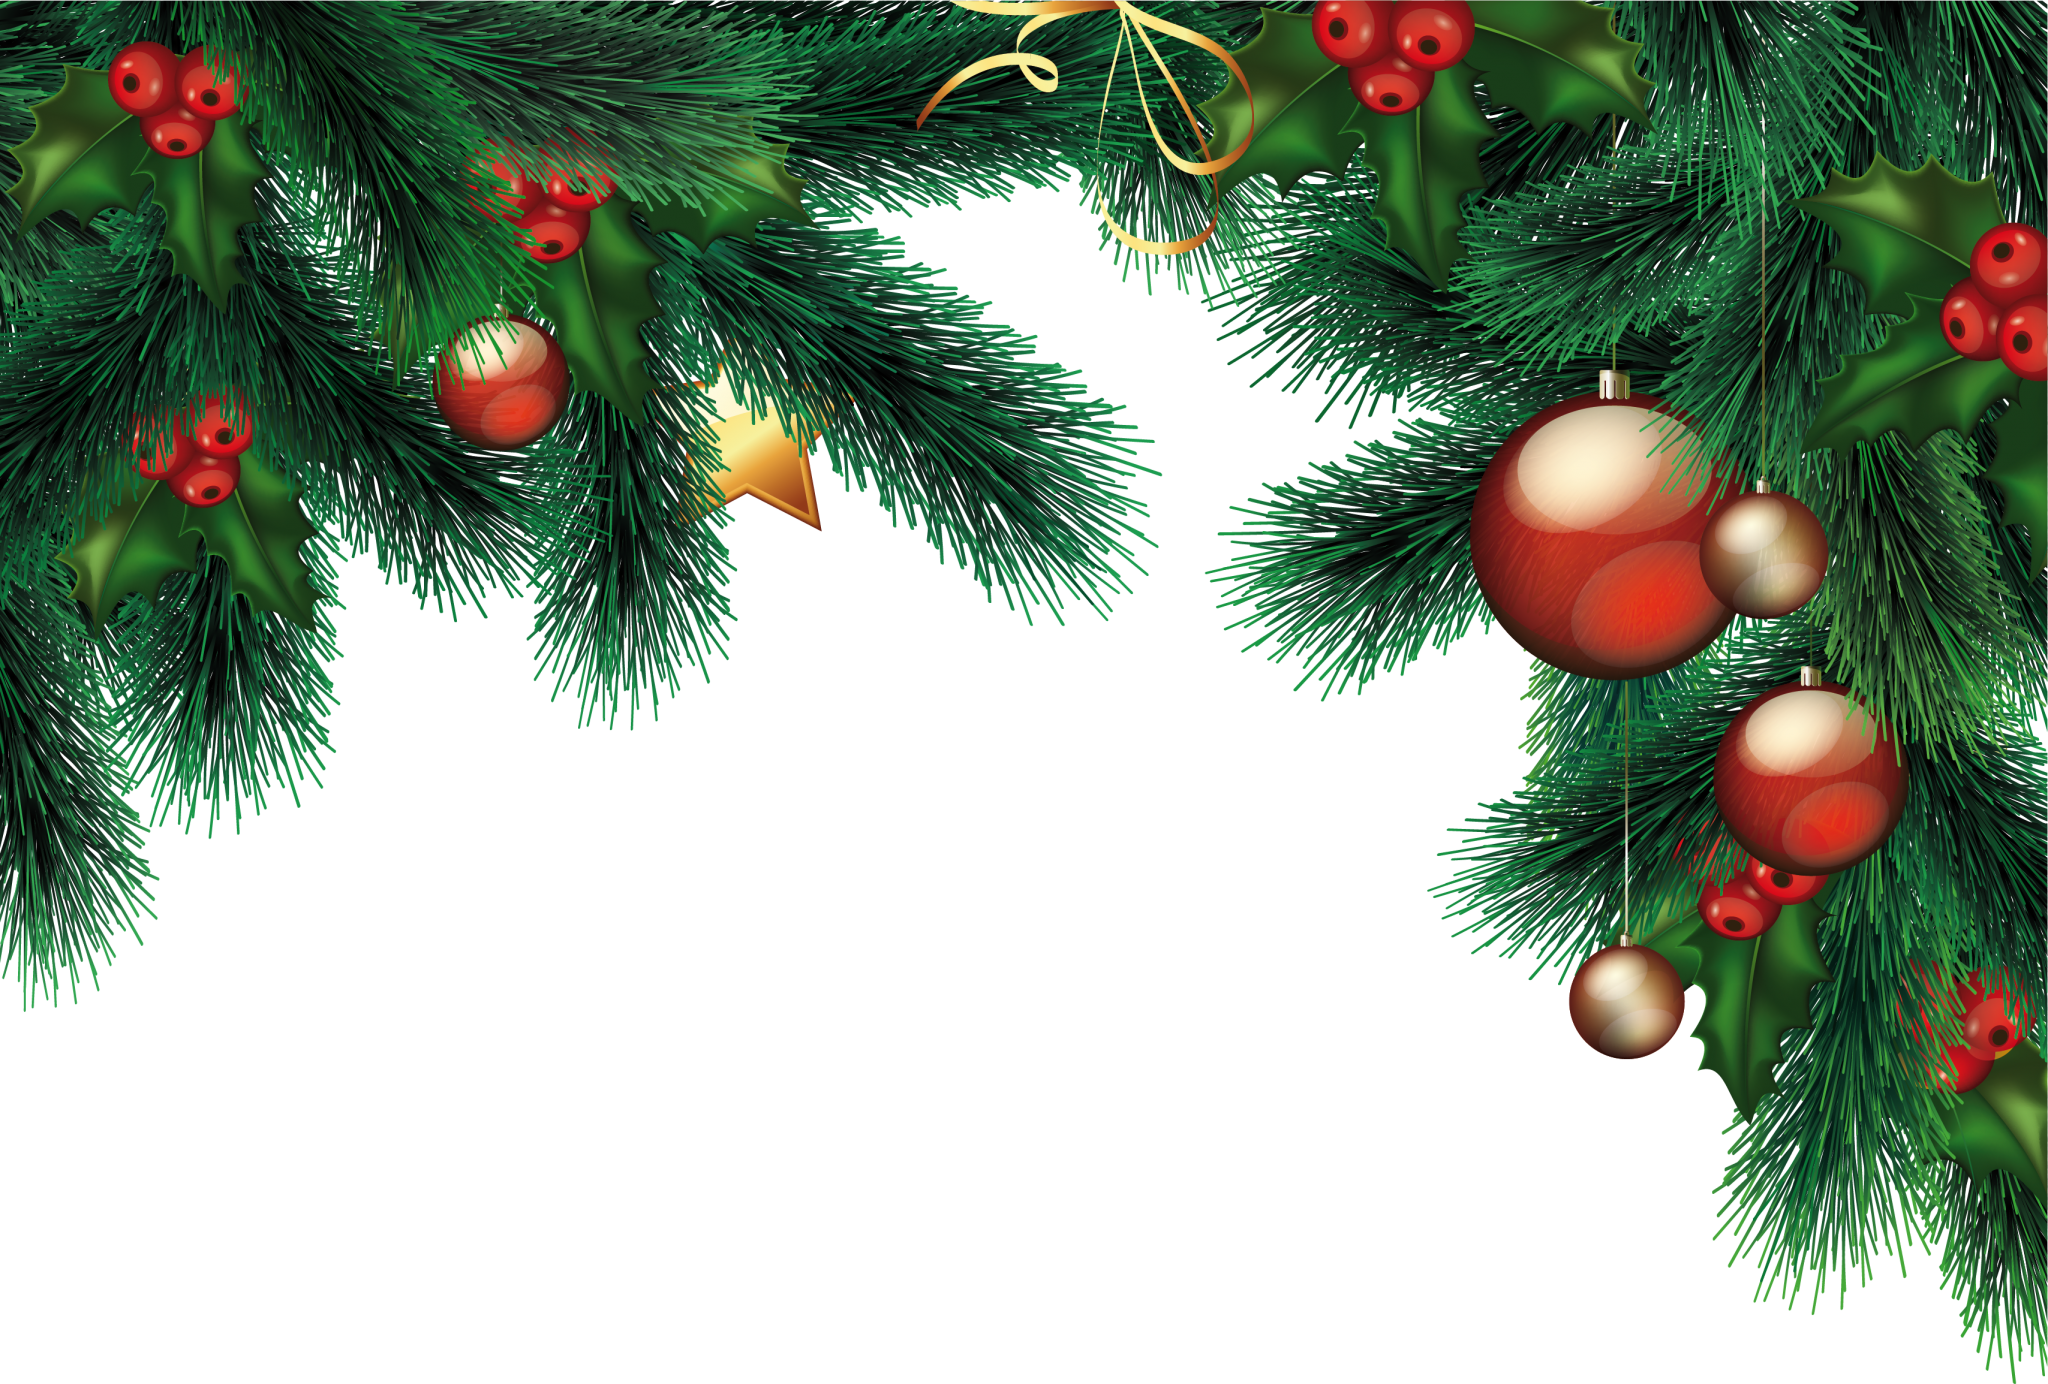 desktop christmas pngs backgrounds free desktop christmas s backgrounds png transparent images 55205 pngio pngio com